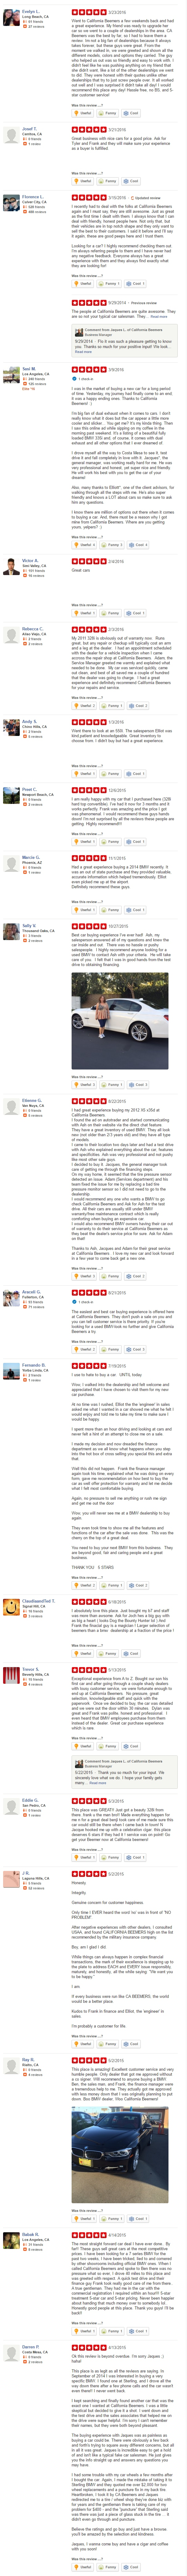 Yelp Reviews - May 2016.png